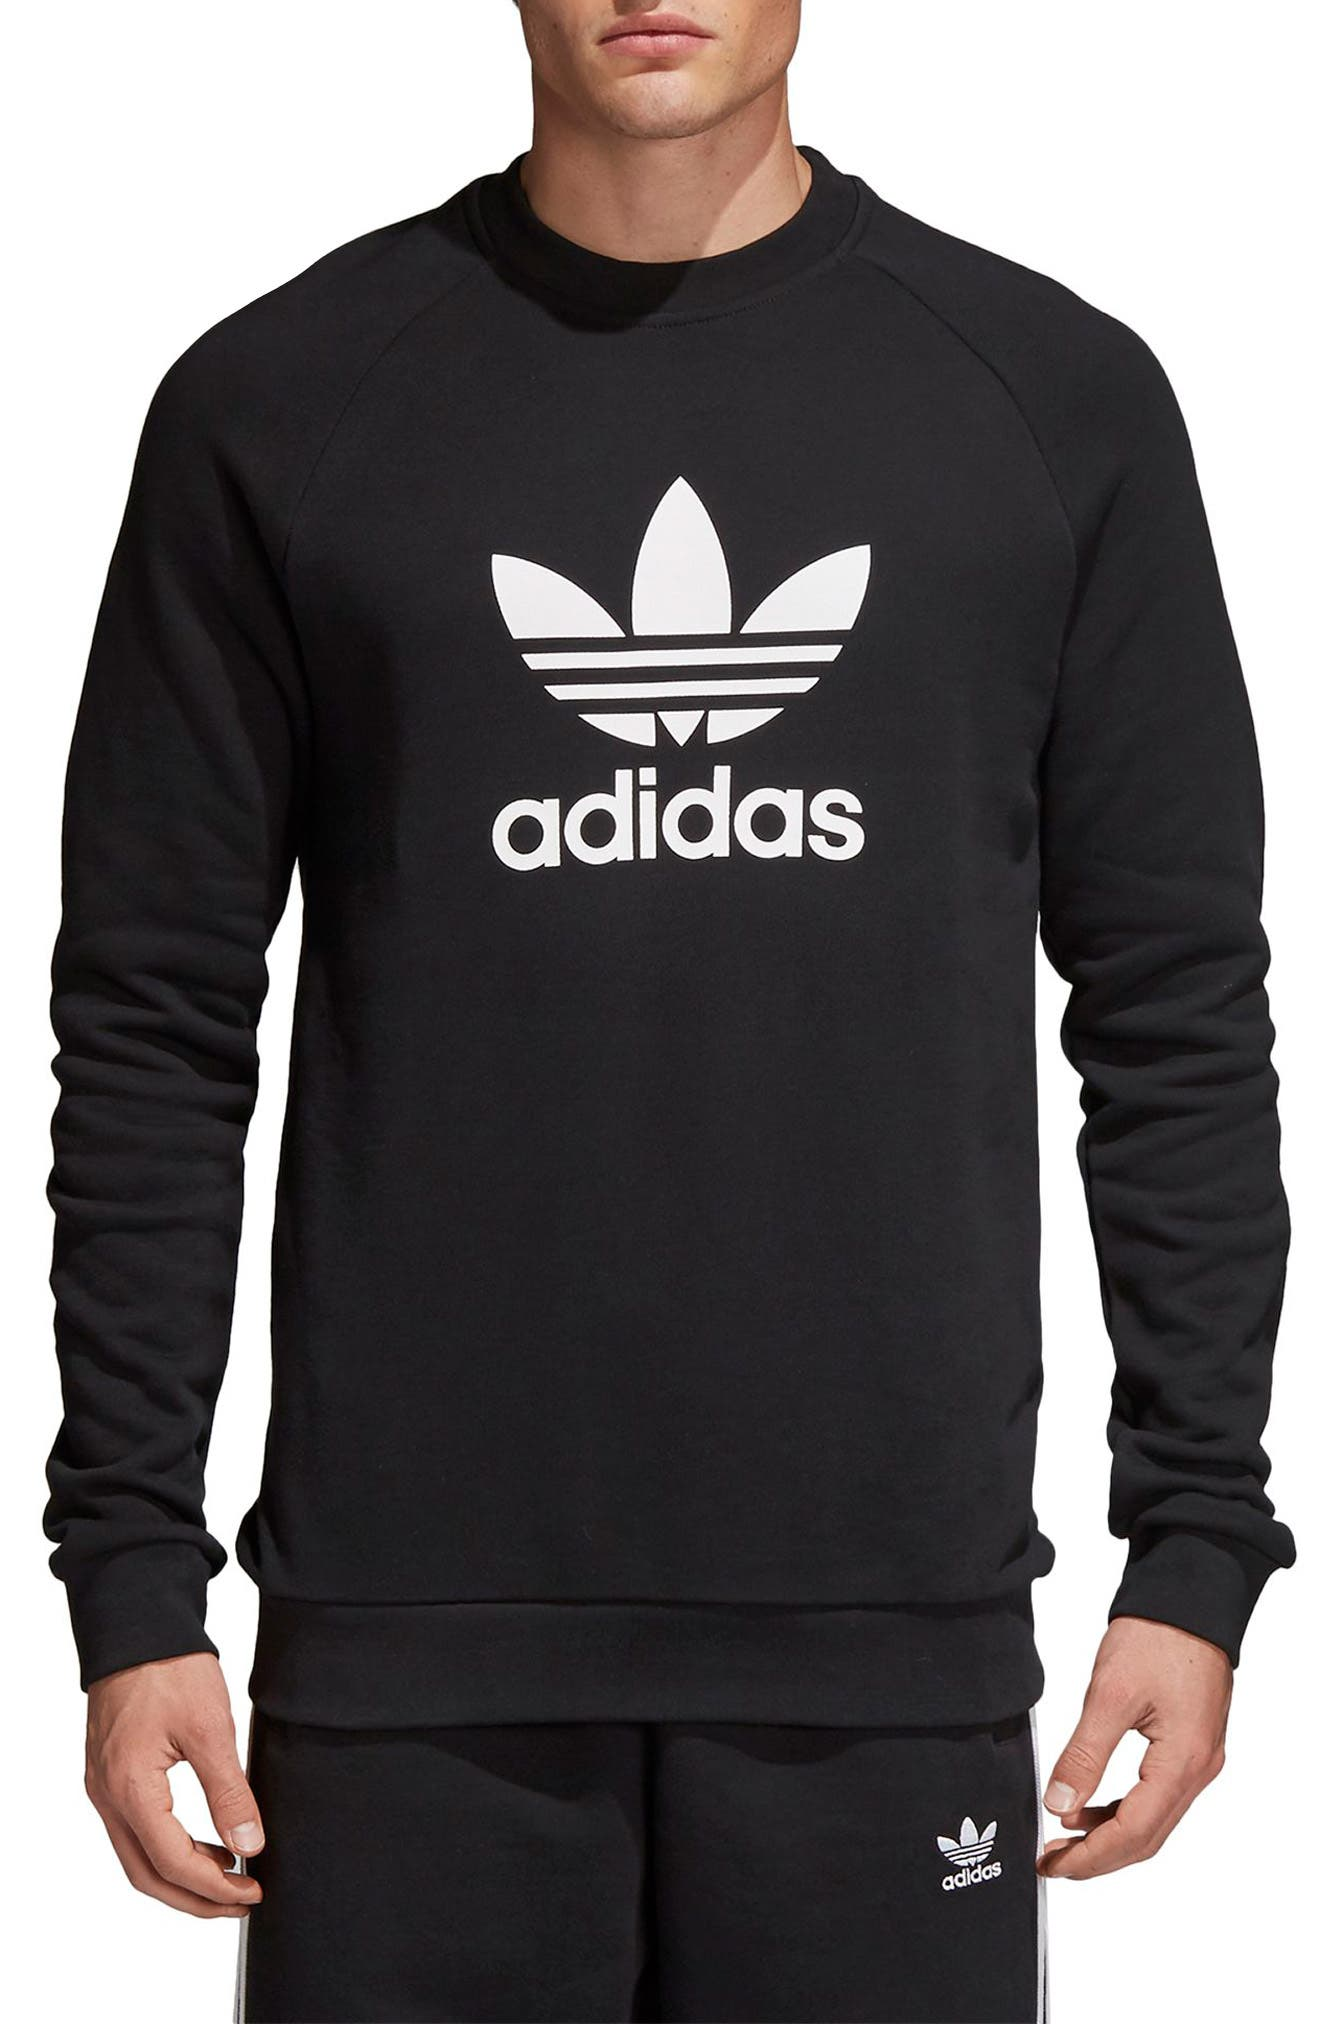 ADIDAS ORIGINALS Trefoil Sweatshirt, Main, color, BLACK